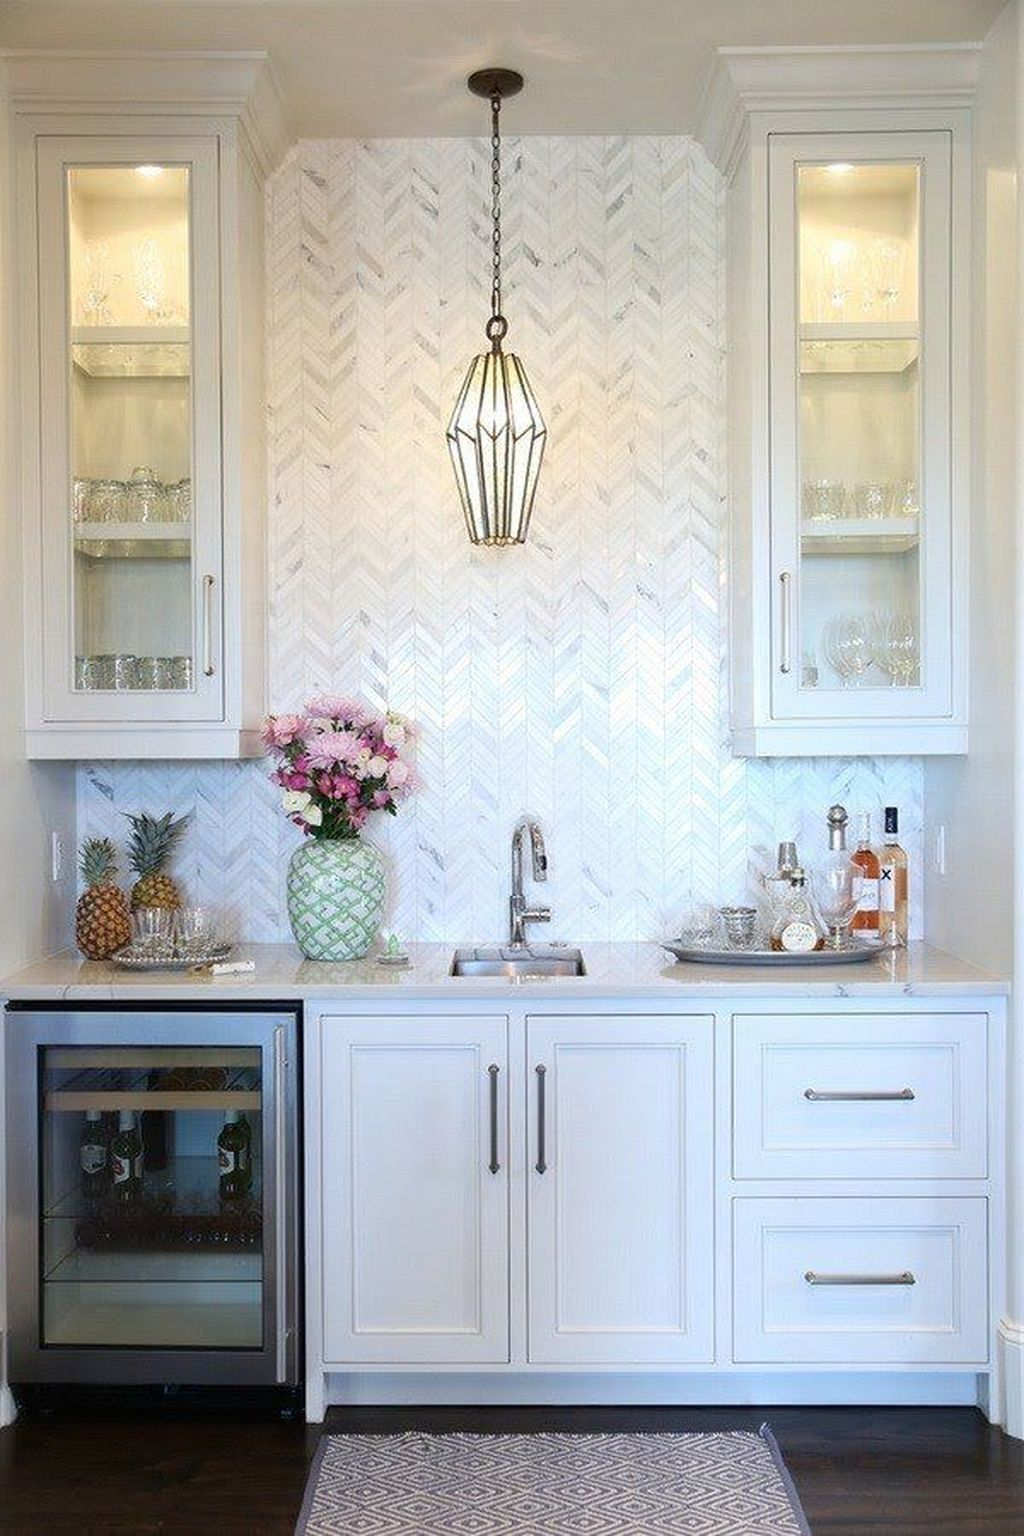 Awesome Creative Kitchen Backsplash Ideas 04